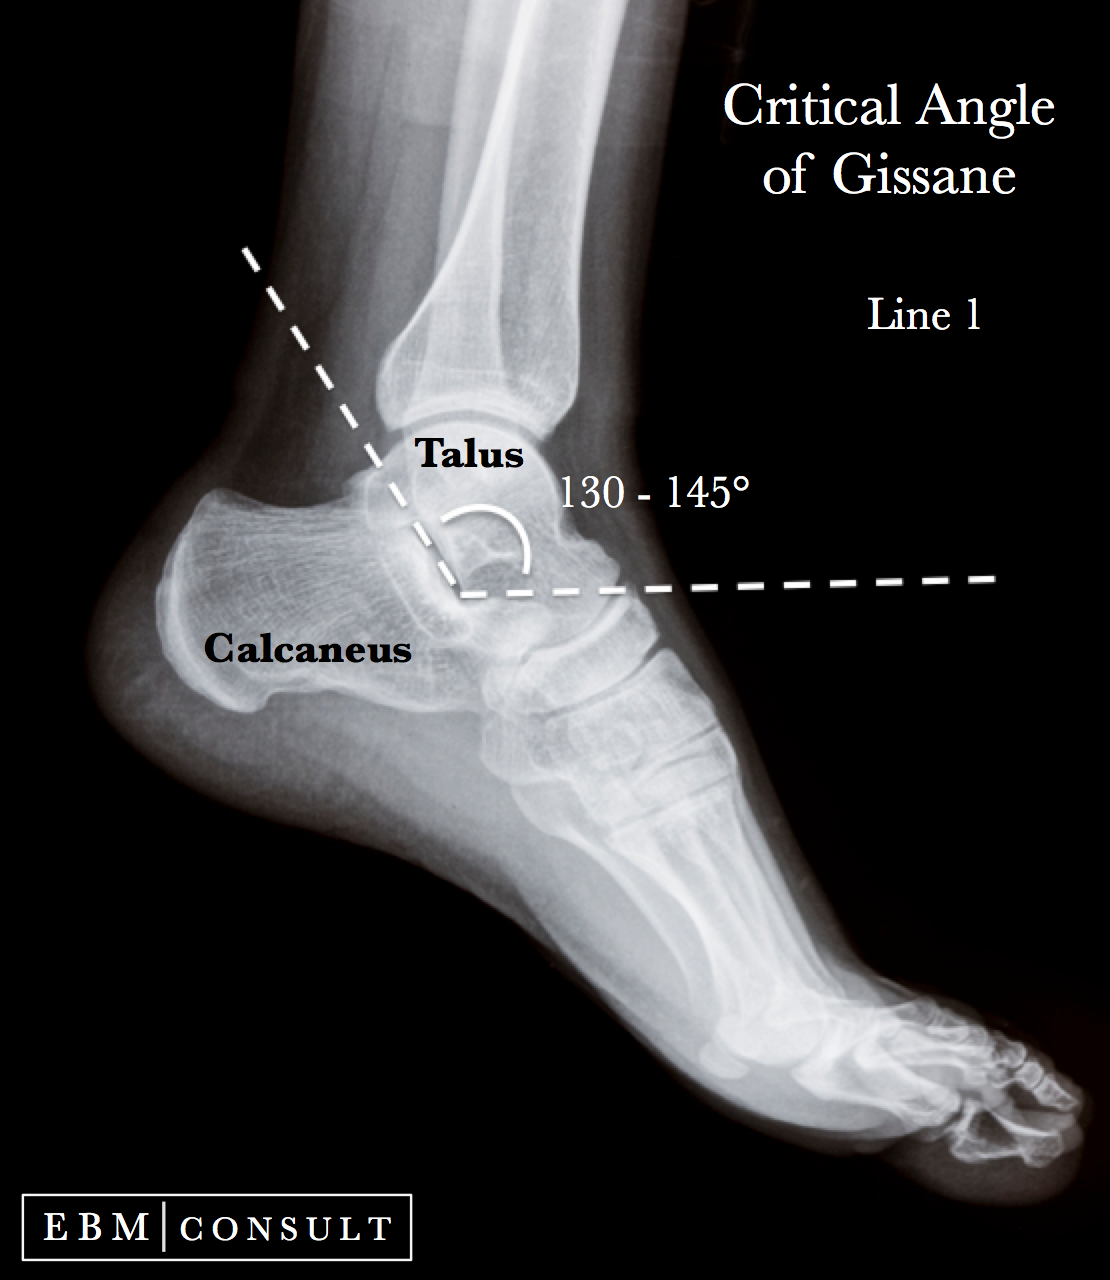 Anatomy Critical Angle of Gissane for Calcaneus Fractures